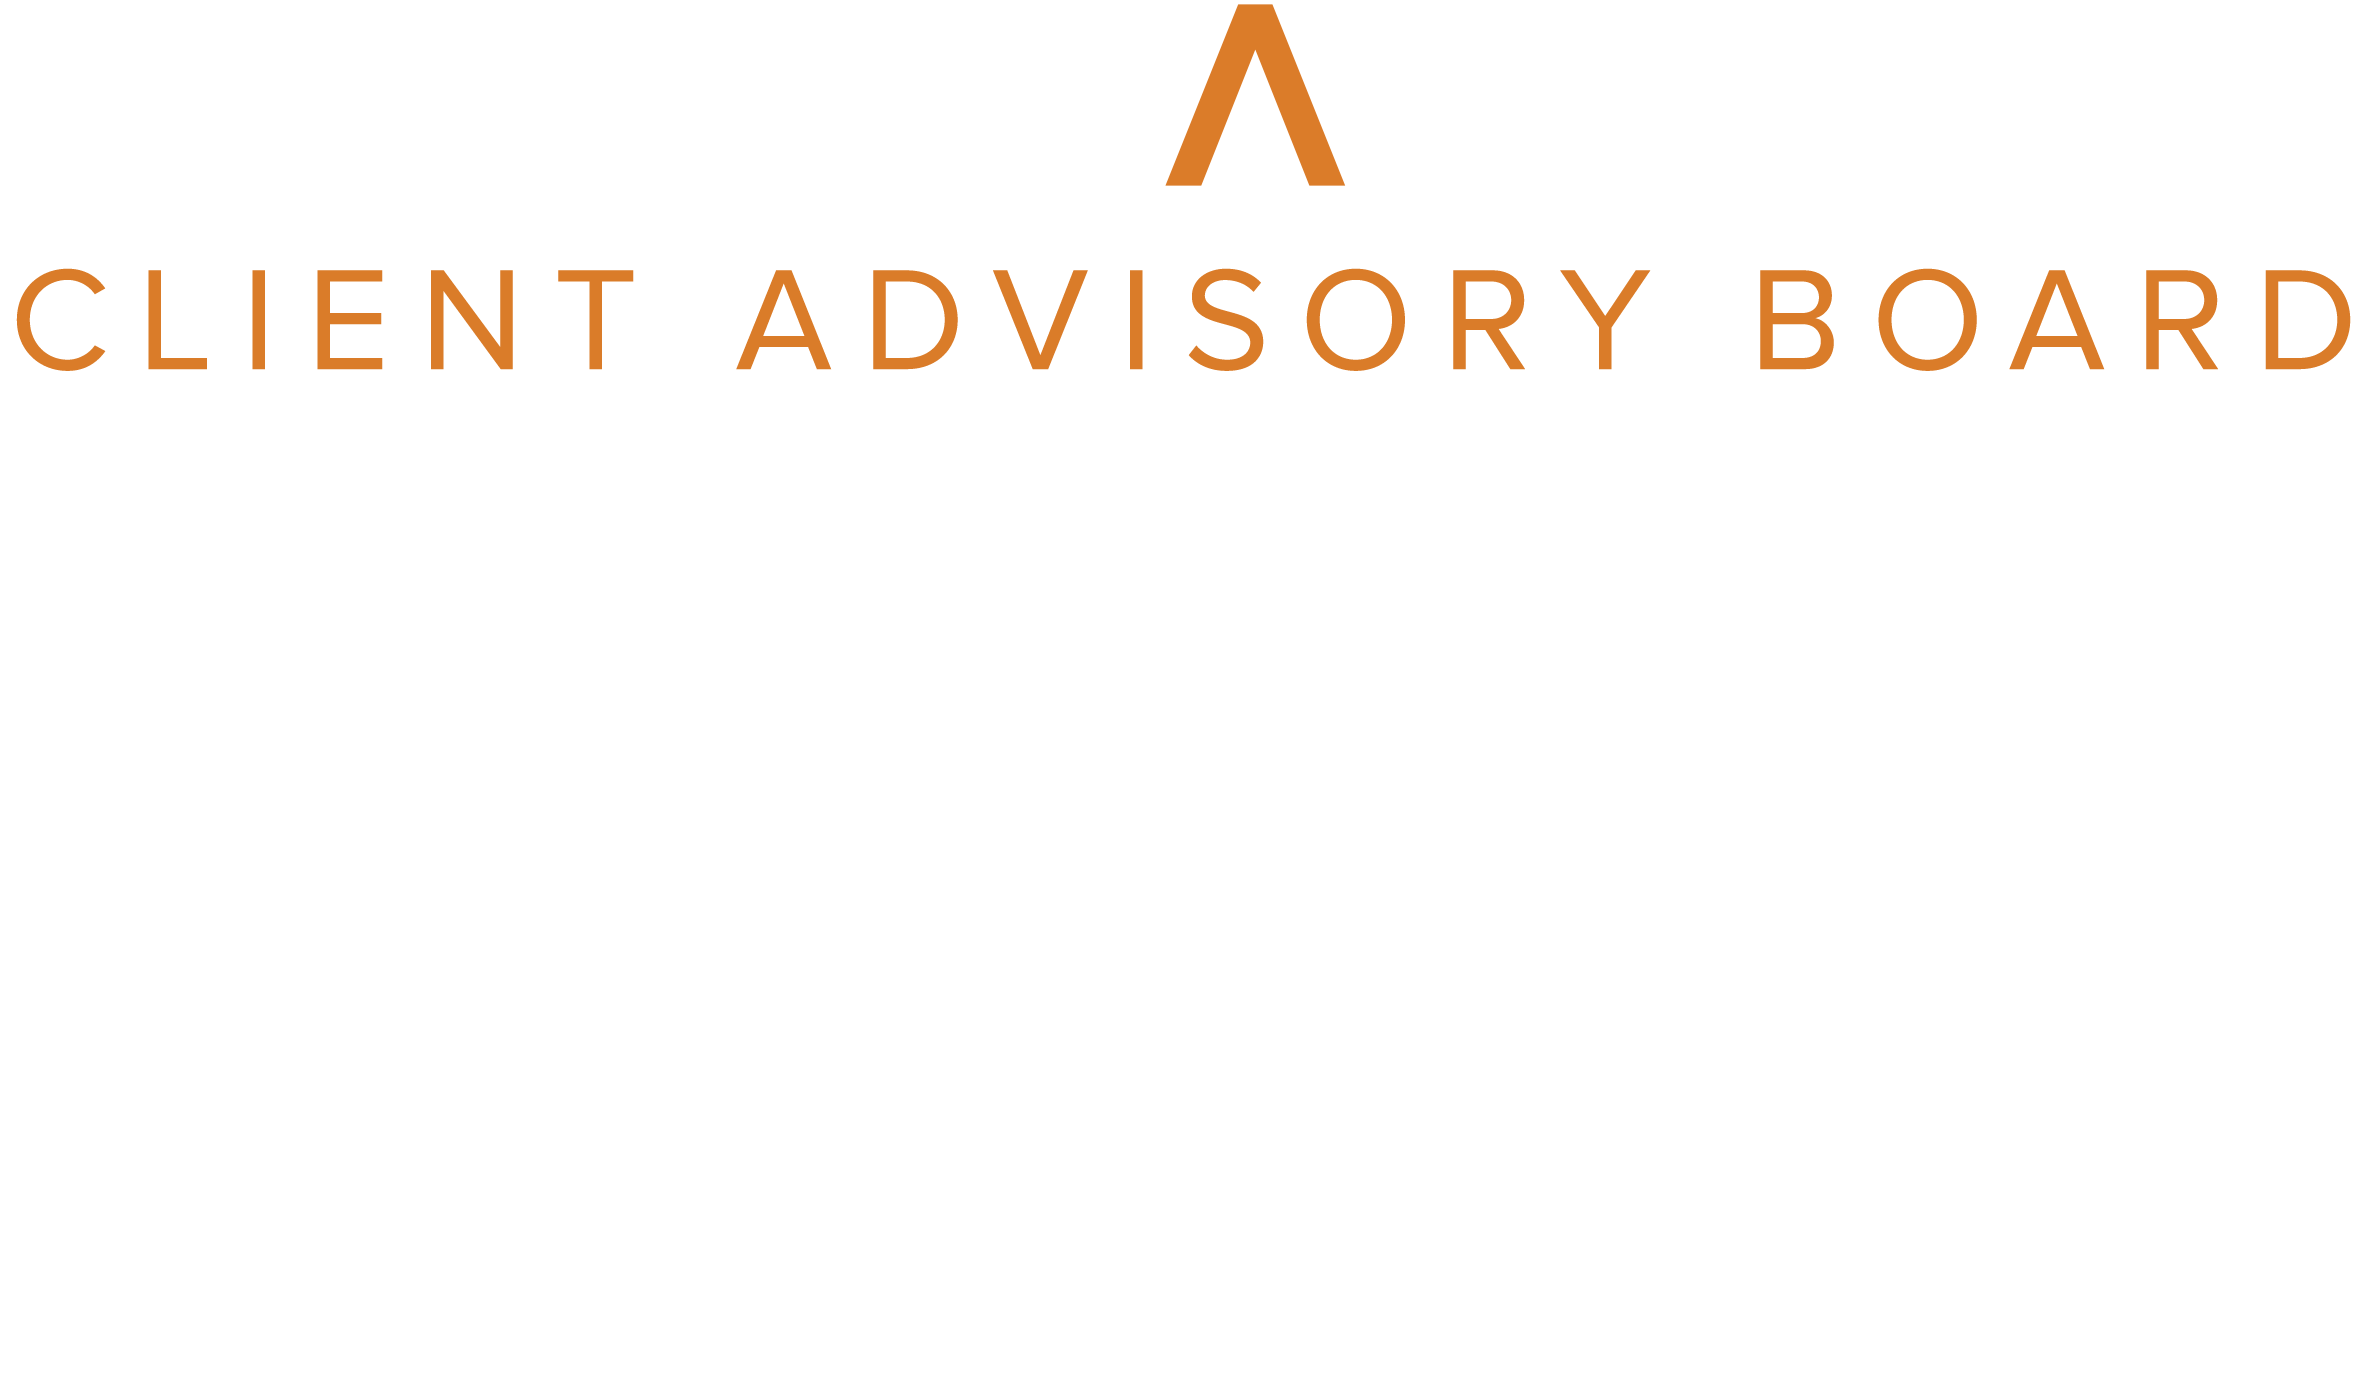 OPERATIVE CLIENT ADVISORY BOARD